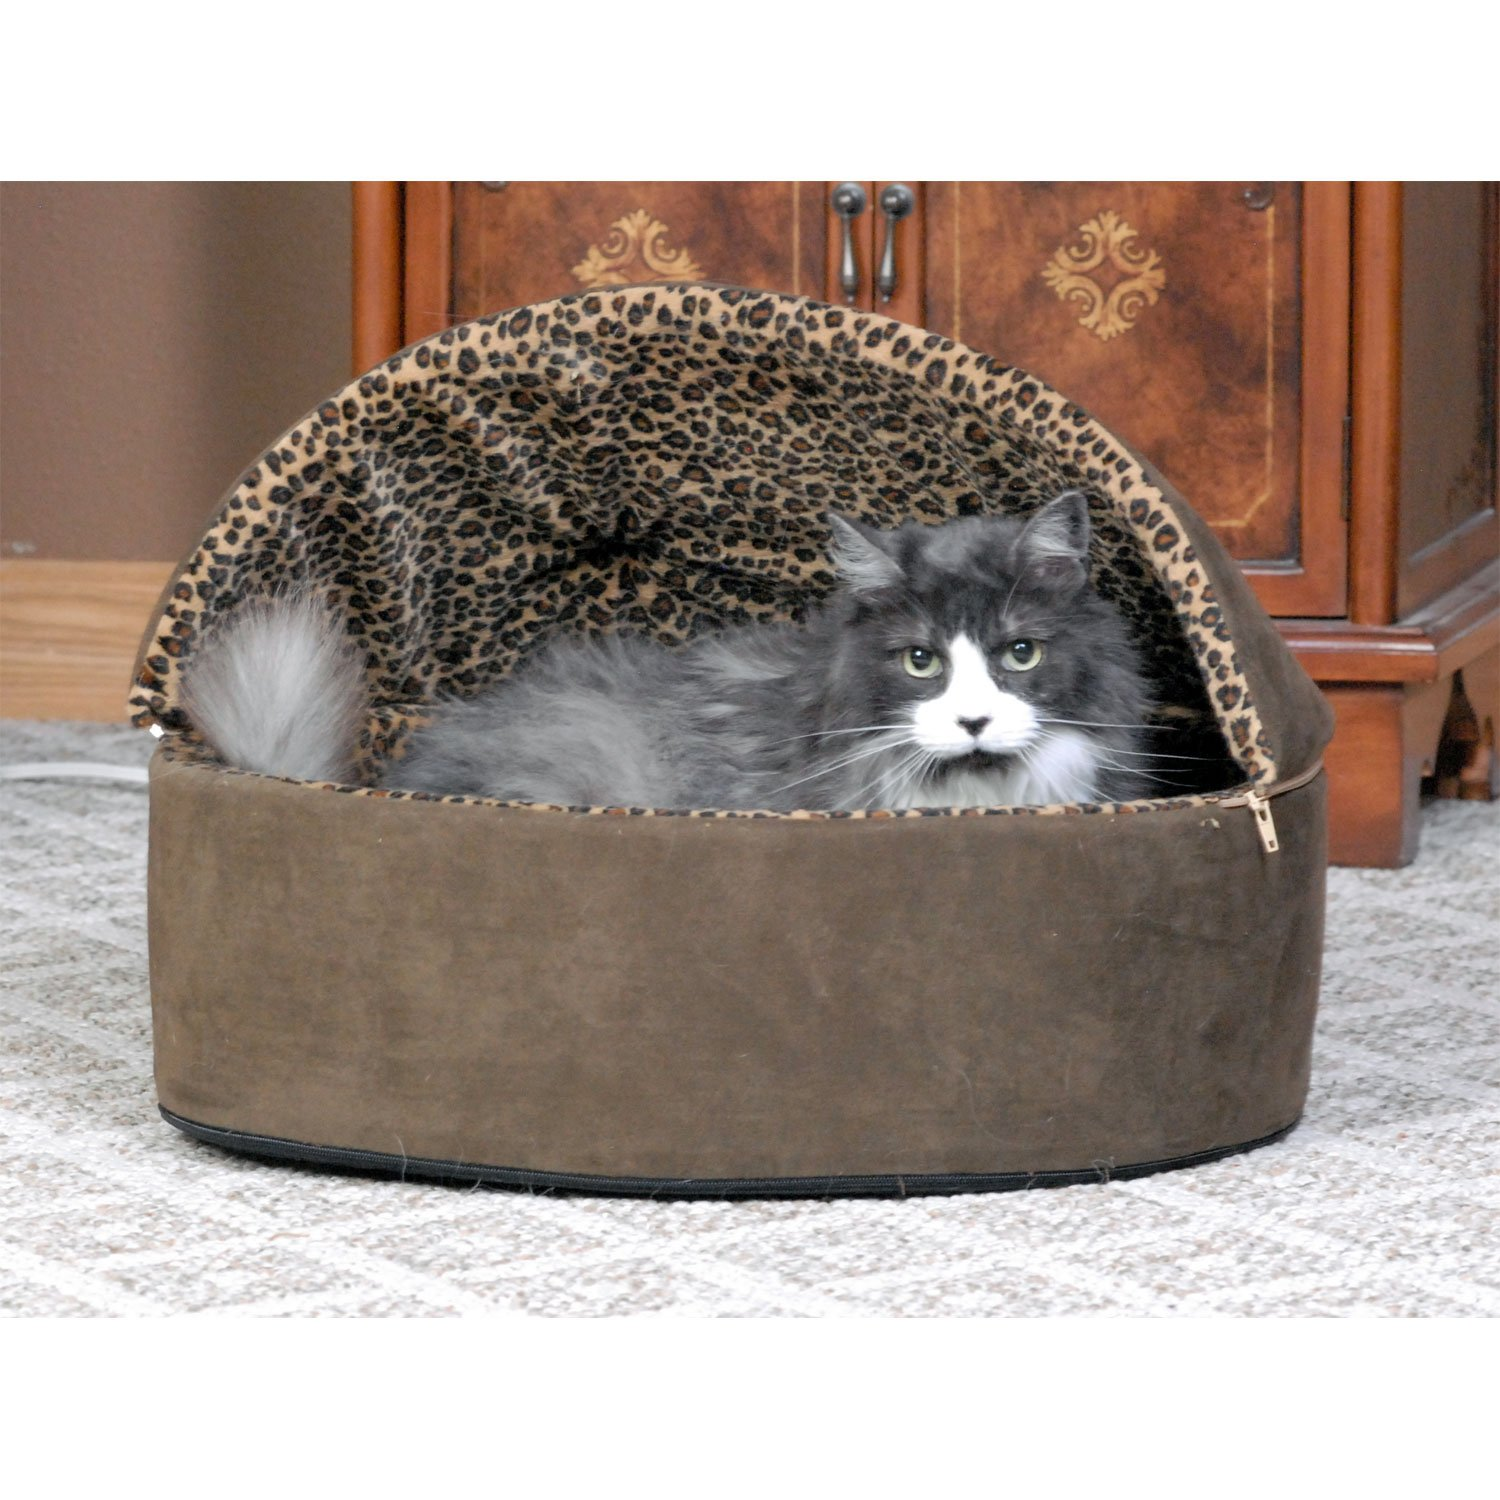 K Amp H Mocha Leopard Thermo Kitty Bed Deluxe Heated Cat Bed